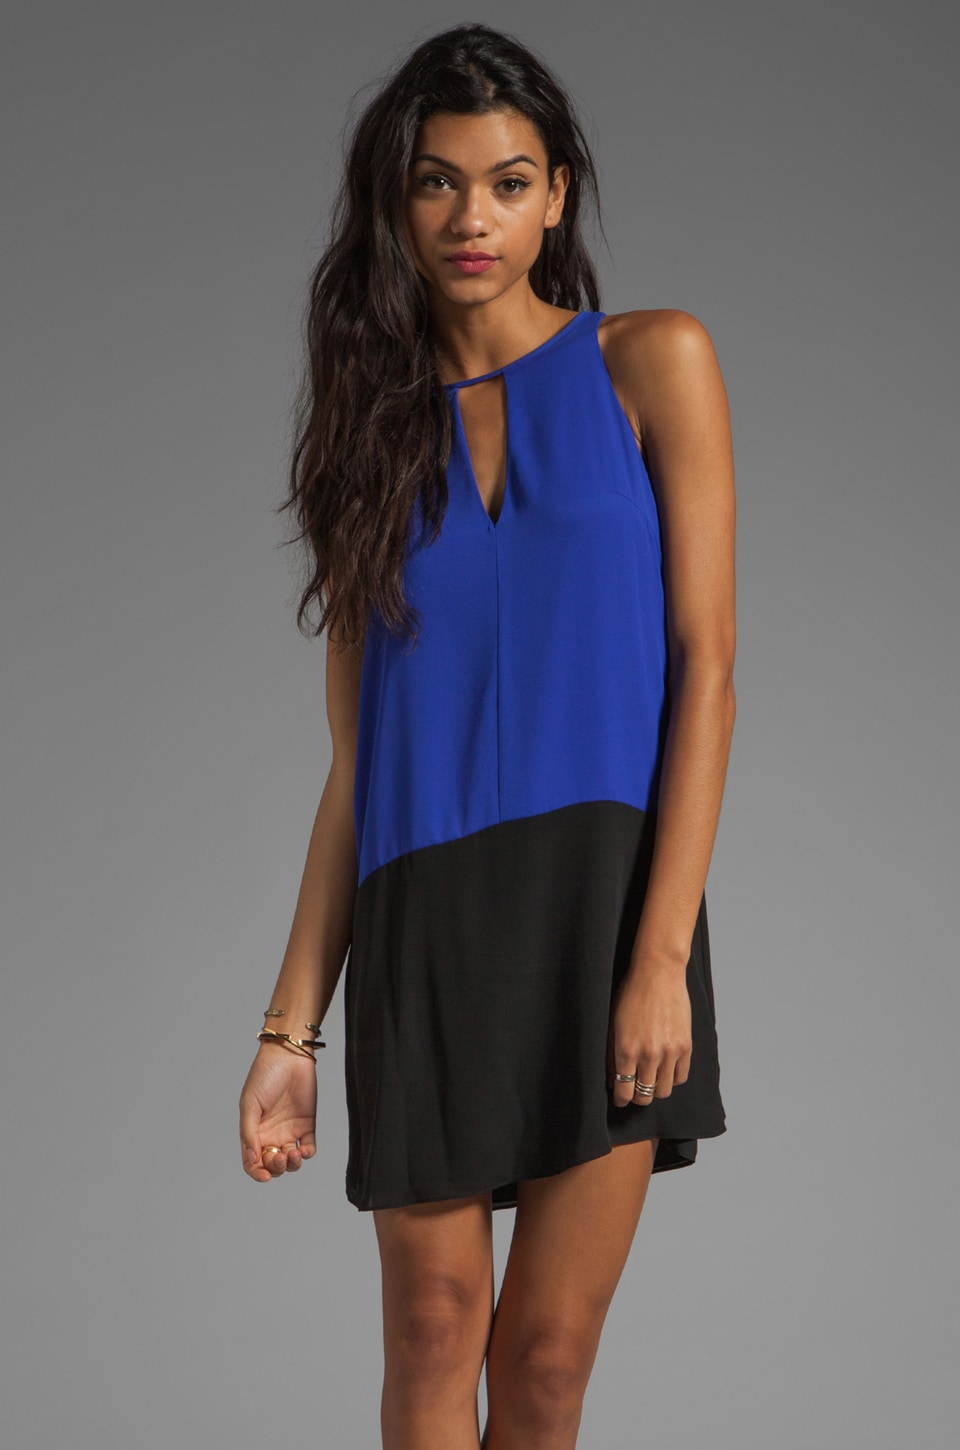 Eight Sixty Colorblock Dress in Blue Surf/Black